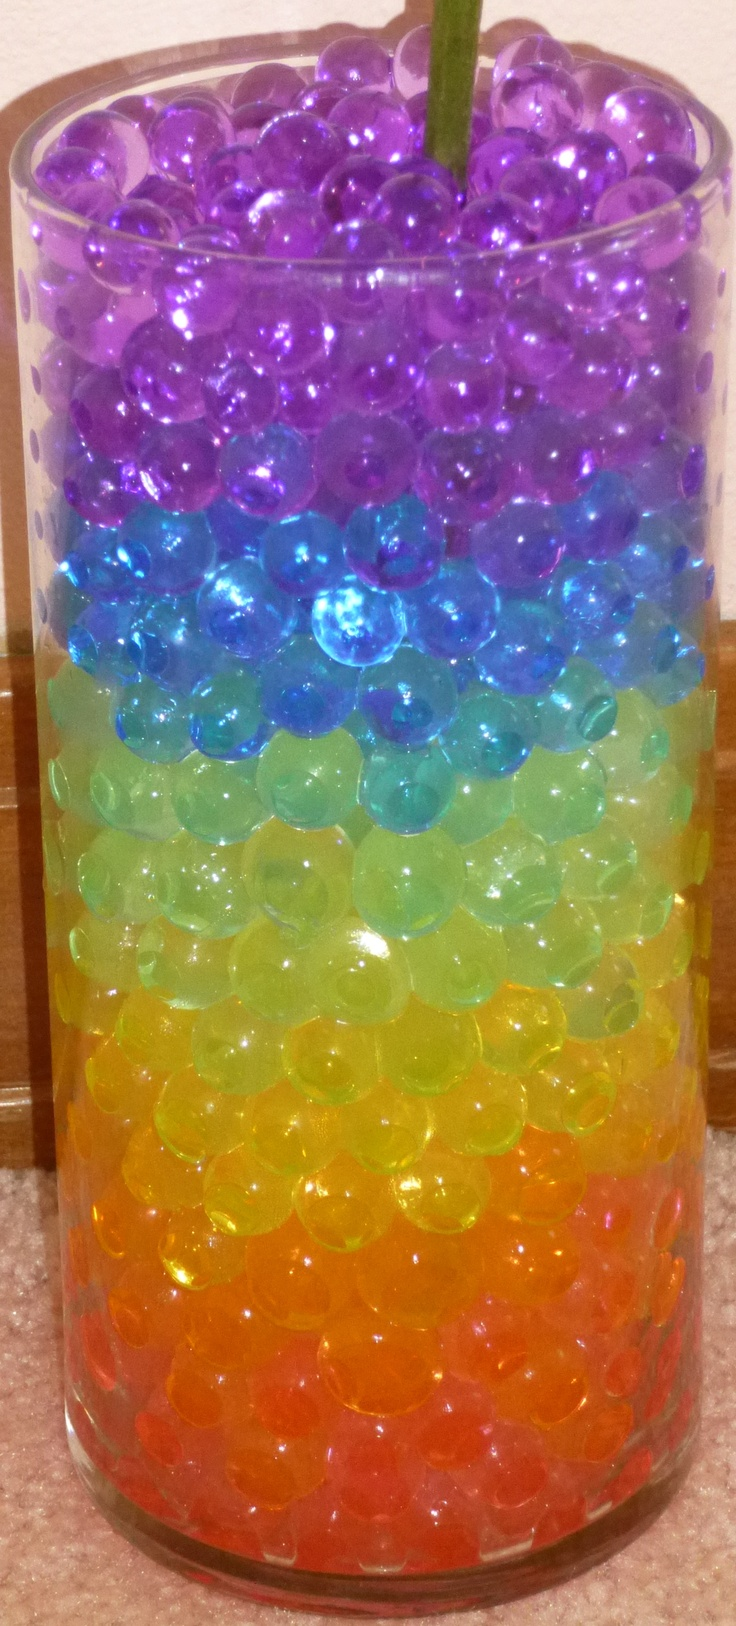 RAINBOW LAYER water beads hydrated absorbing gel, Magic marble crystal orbeez for plants and flowers. Keeps plants watered for 2-4 weeks (depending on the environment). * Highest Quality, Colorfast, Odorless, Non-molding and Non-Toxic. Great for wedding centerpieces! 12 colors available: Green, Teal, Black, White, Clear, Rainbow Mix, Purple, Pink, Orange, Yellow, Coral-Red and Blue. To purchase: www.giftsbyabigail.com/water-beads .... 9 cups of water beads for only $12.00 w/ FREE SHIPPING!!!